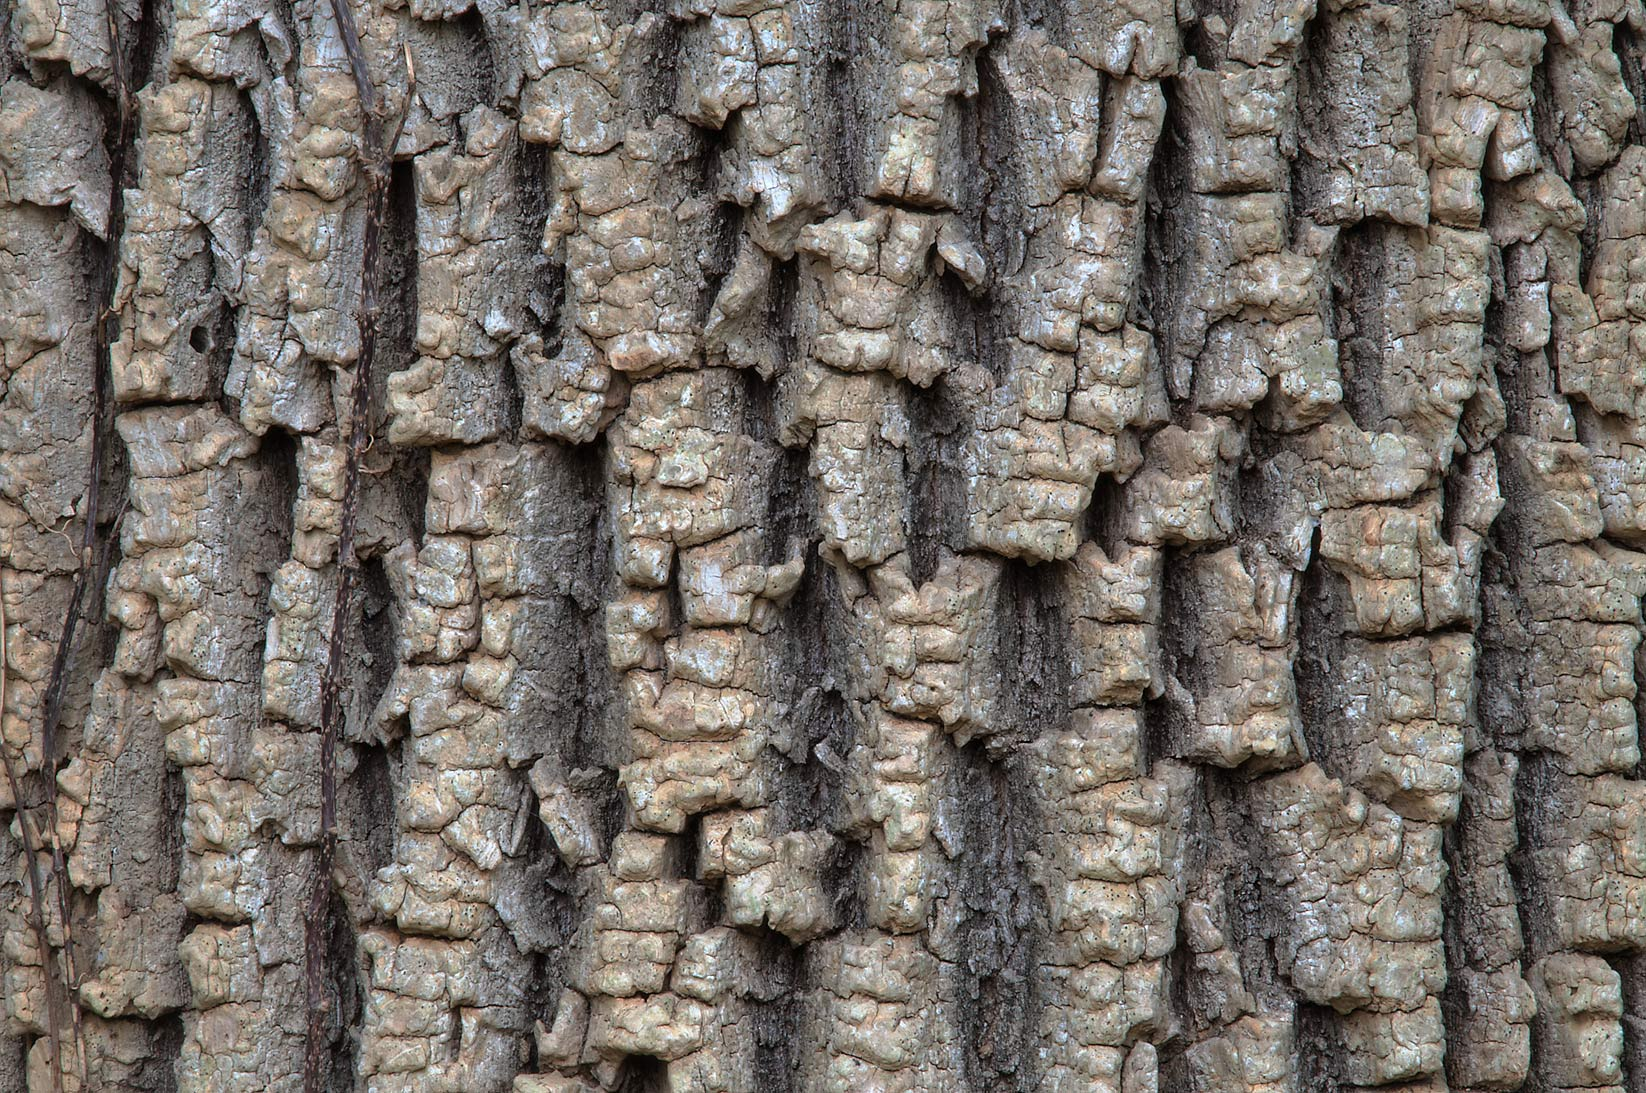 Tree bark on Racoon Run Trail in Lick Creek Park. College Station, Texas